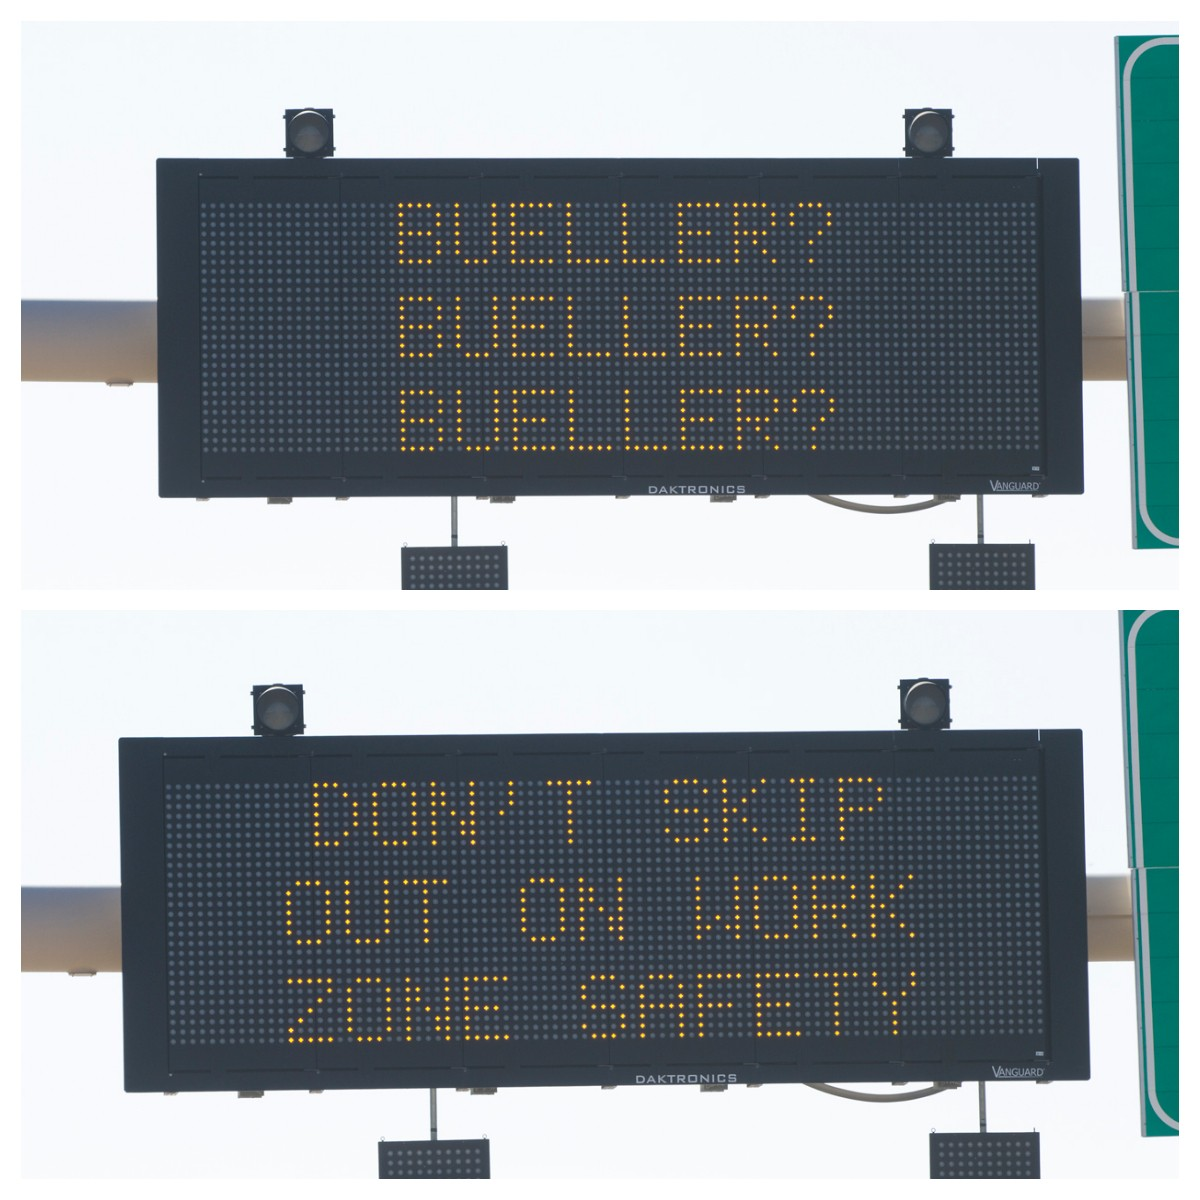 /content/dam/ok/en/odot/images/message-signs/08.24.16.jpg